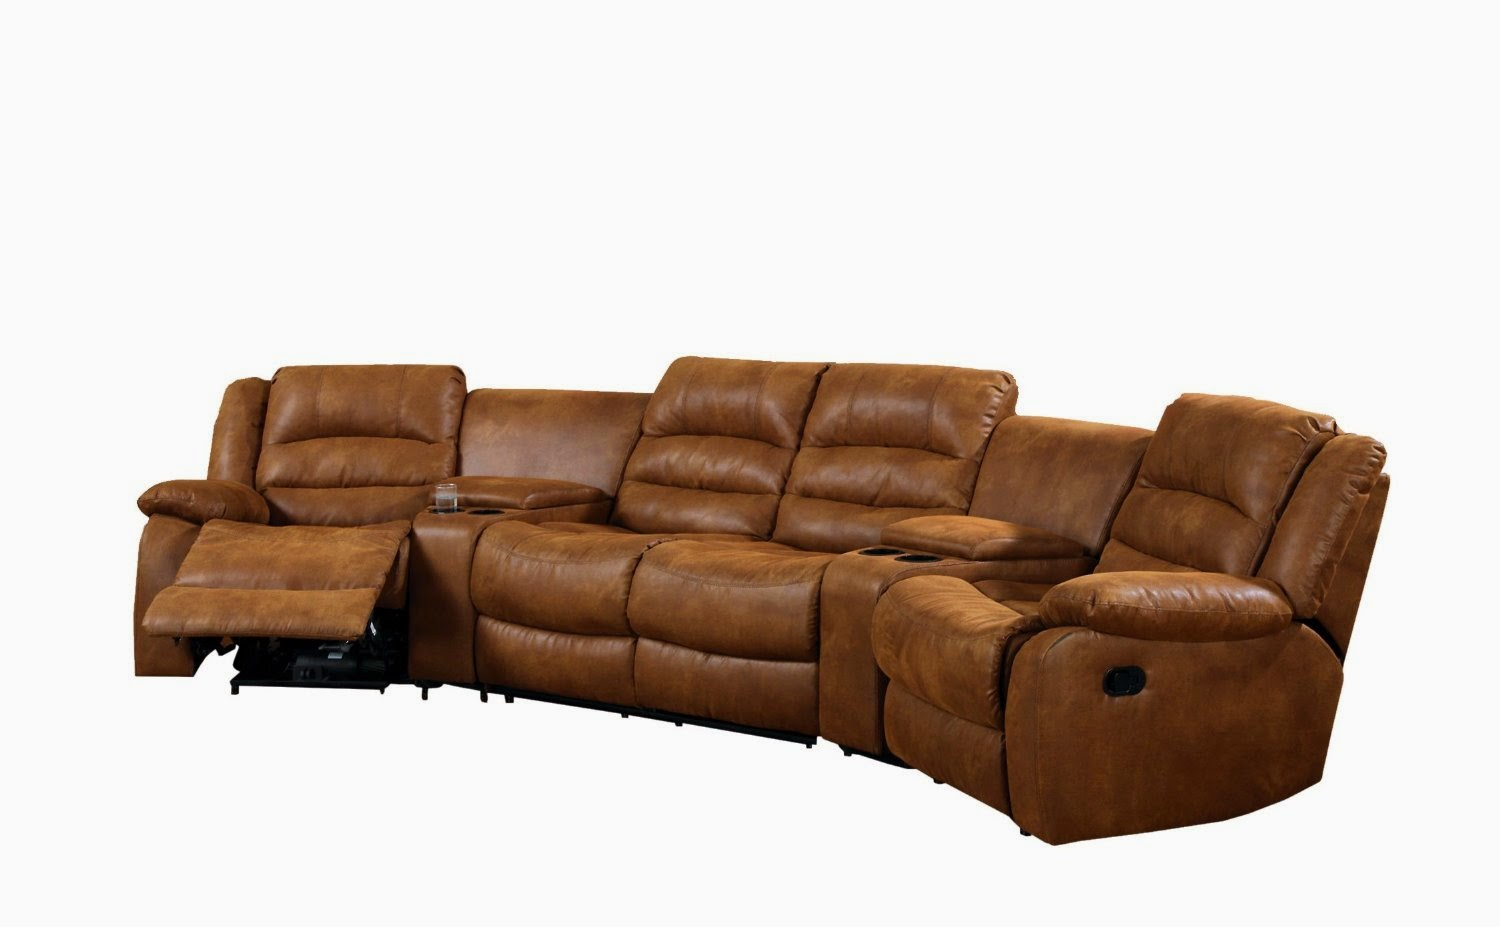 Cheap reclining sofas sale brown reclining sofa set for Couch sets for sale cheap